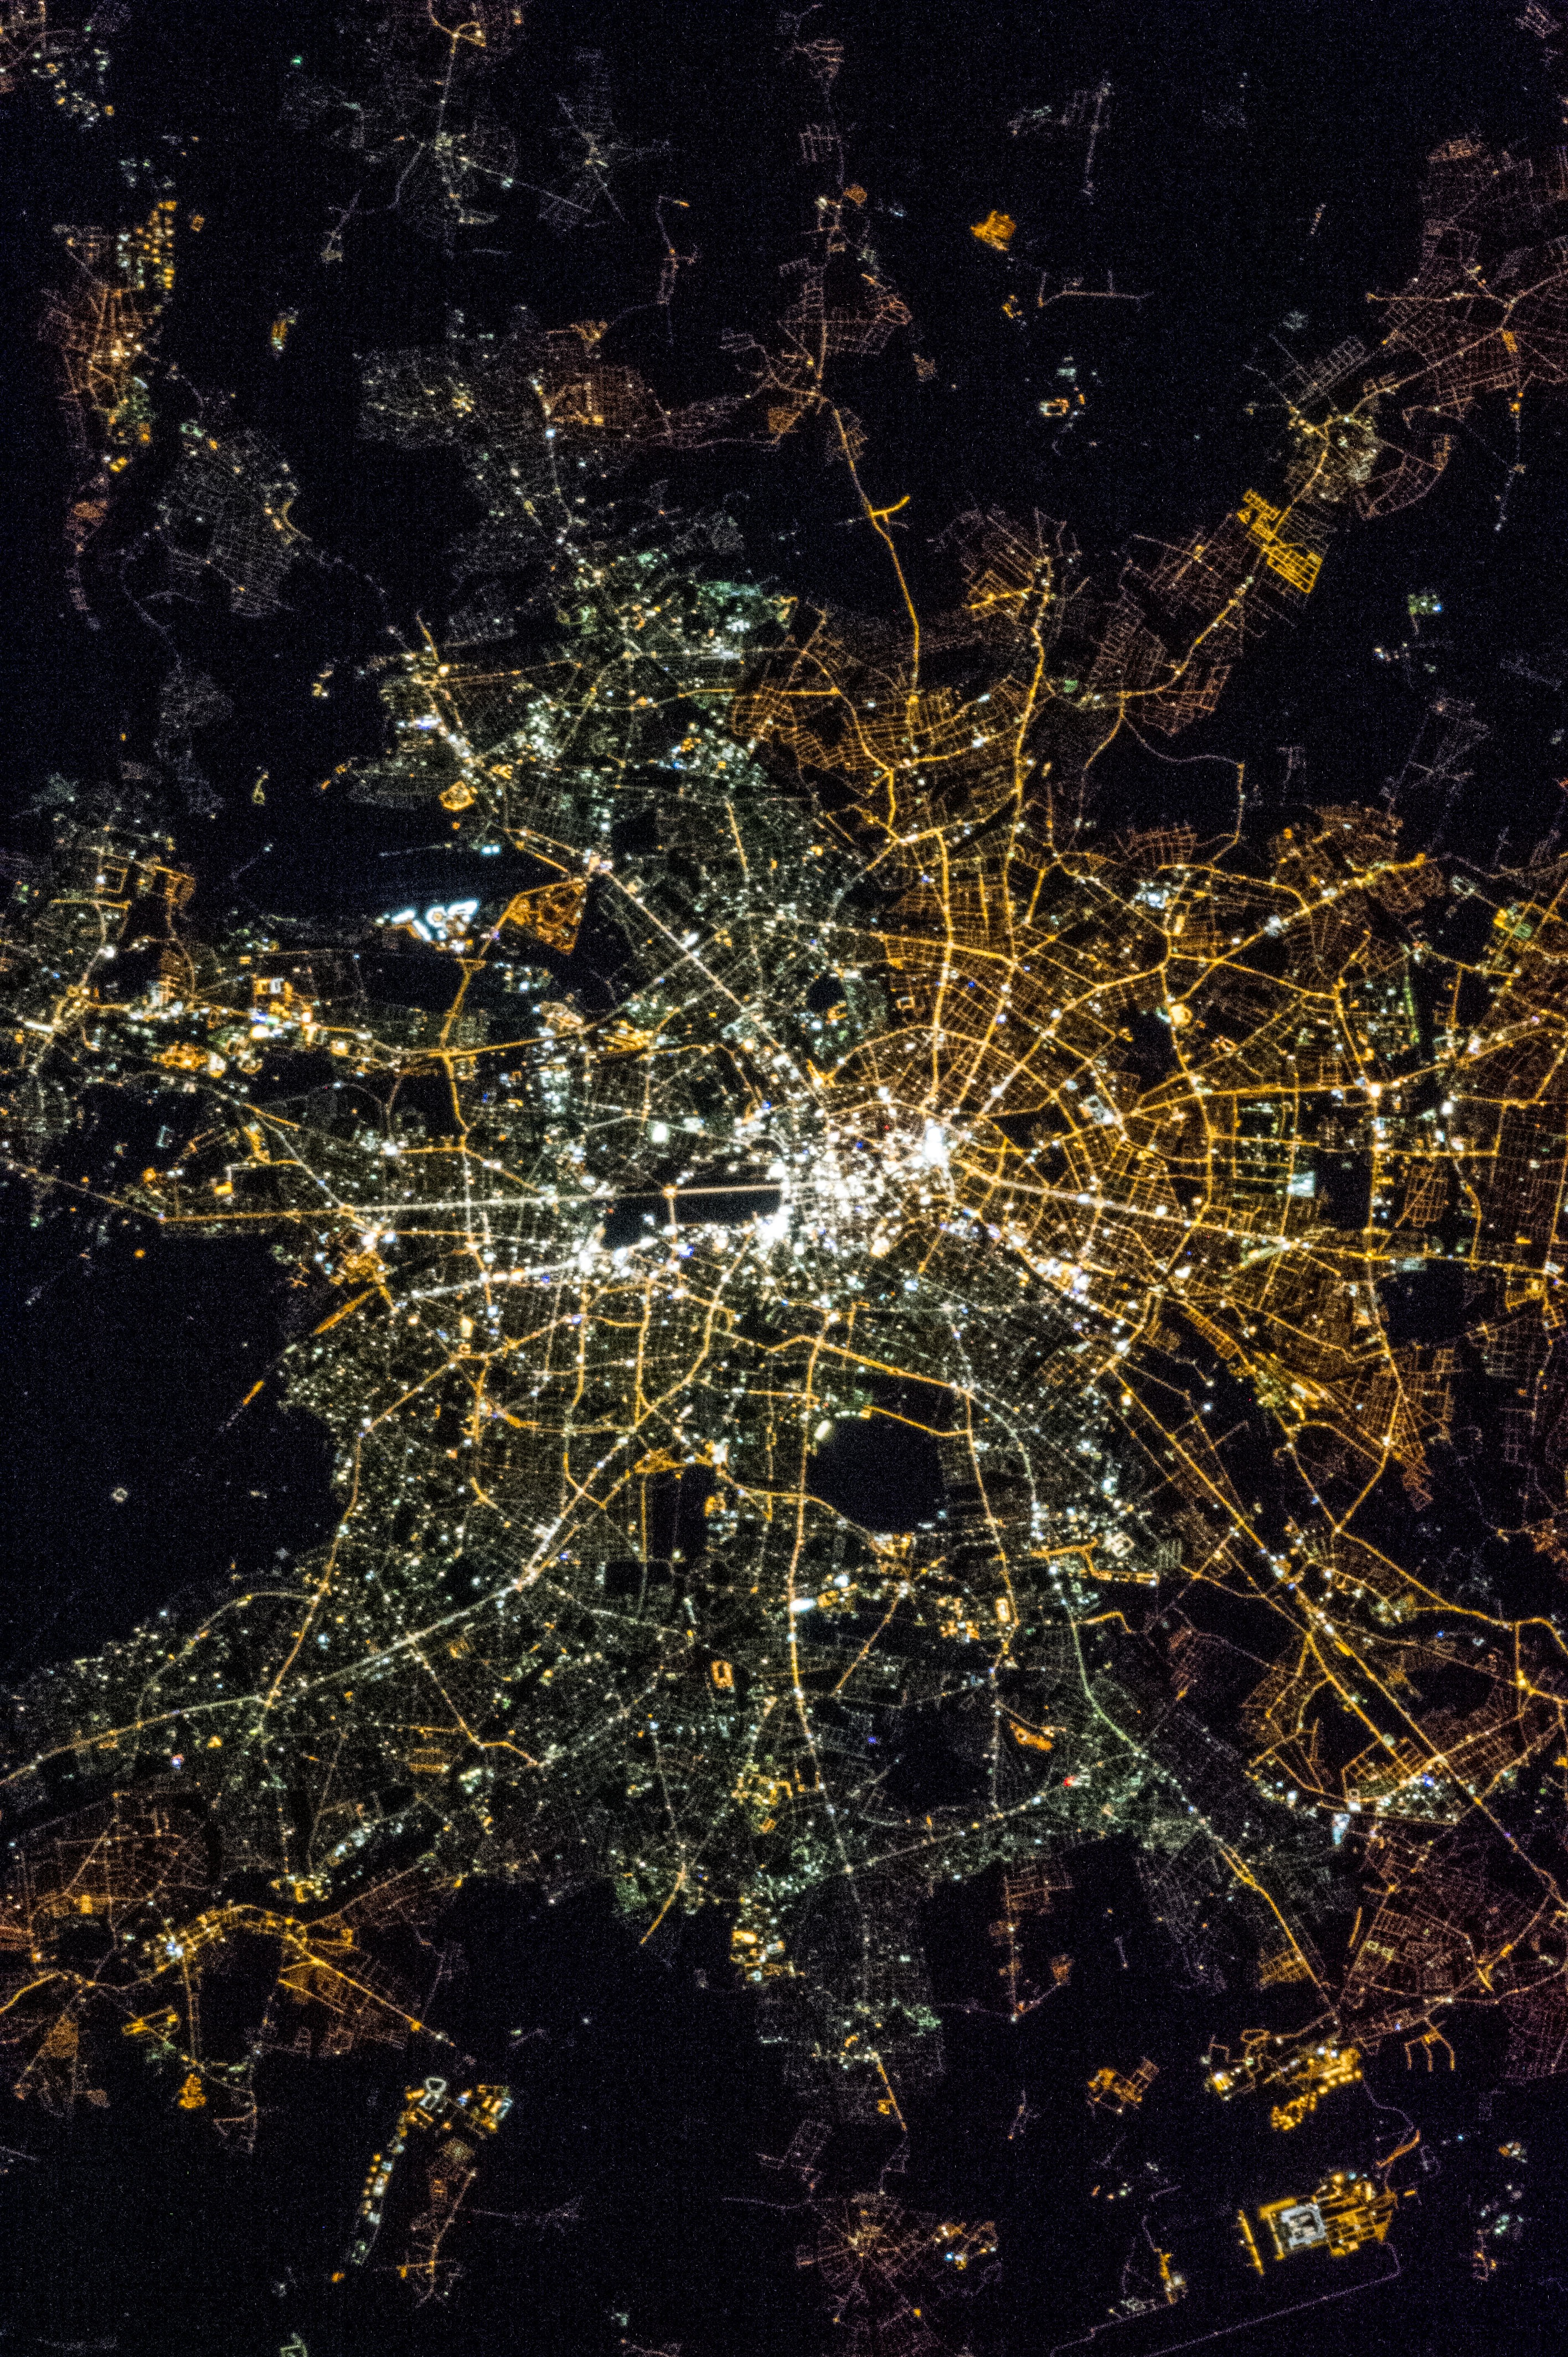 light pollution and nighttime aerial photos from berlin. Black Bedroom Furniture Sets. Home Design Ideas